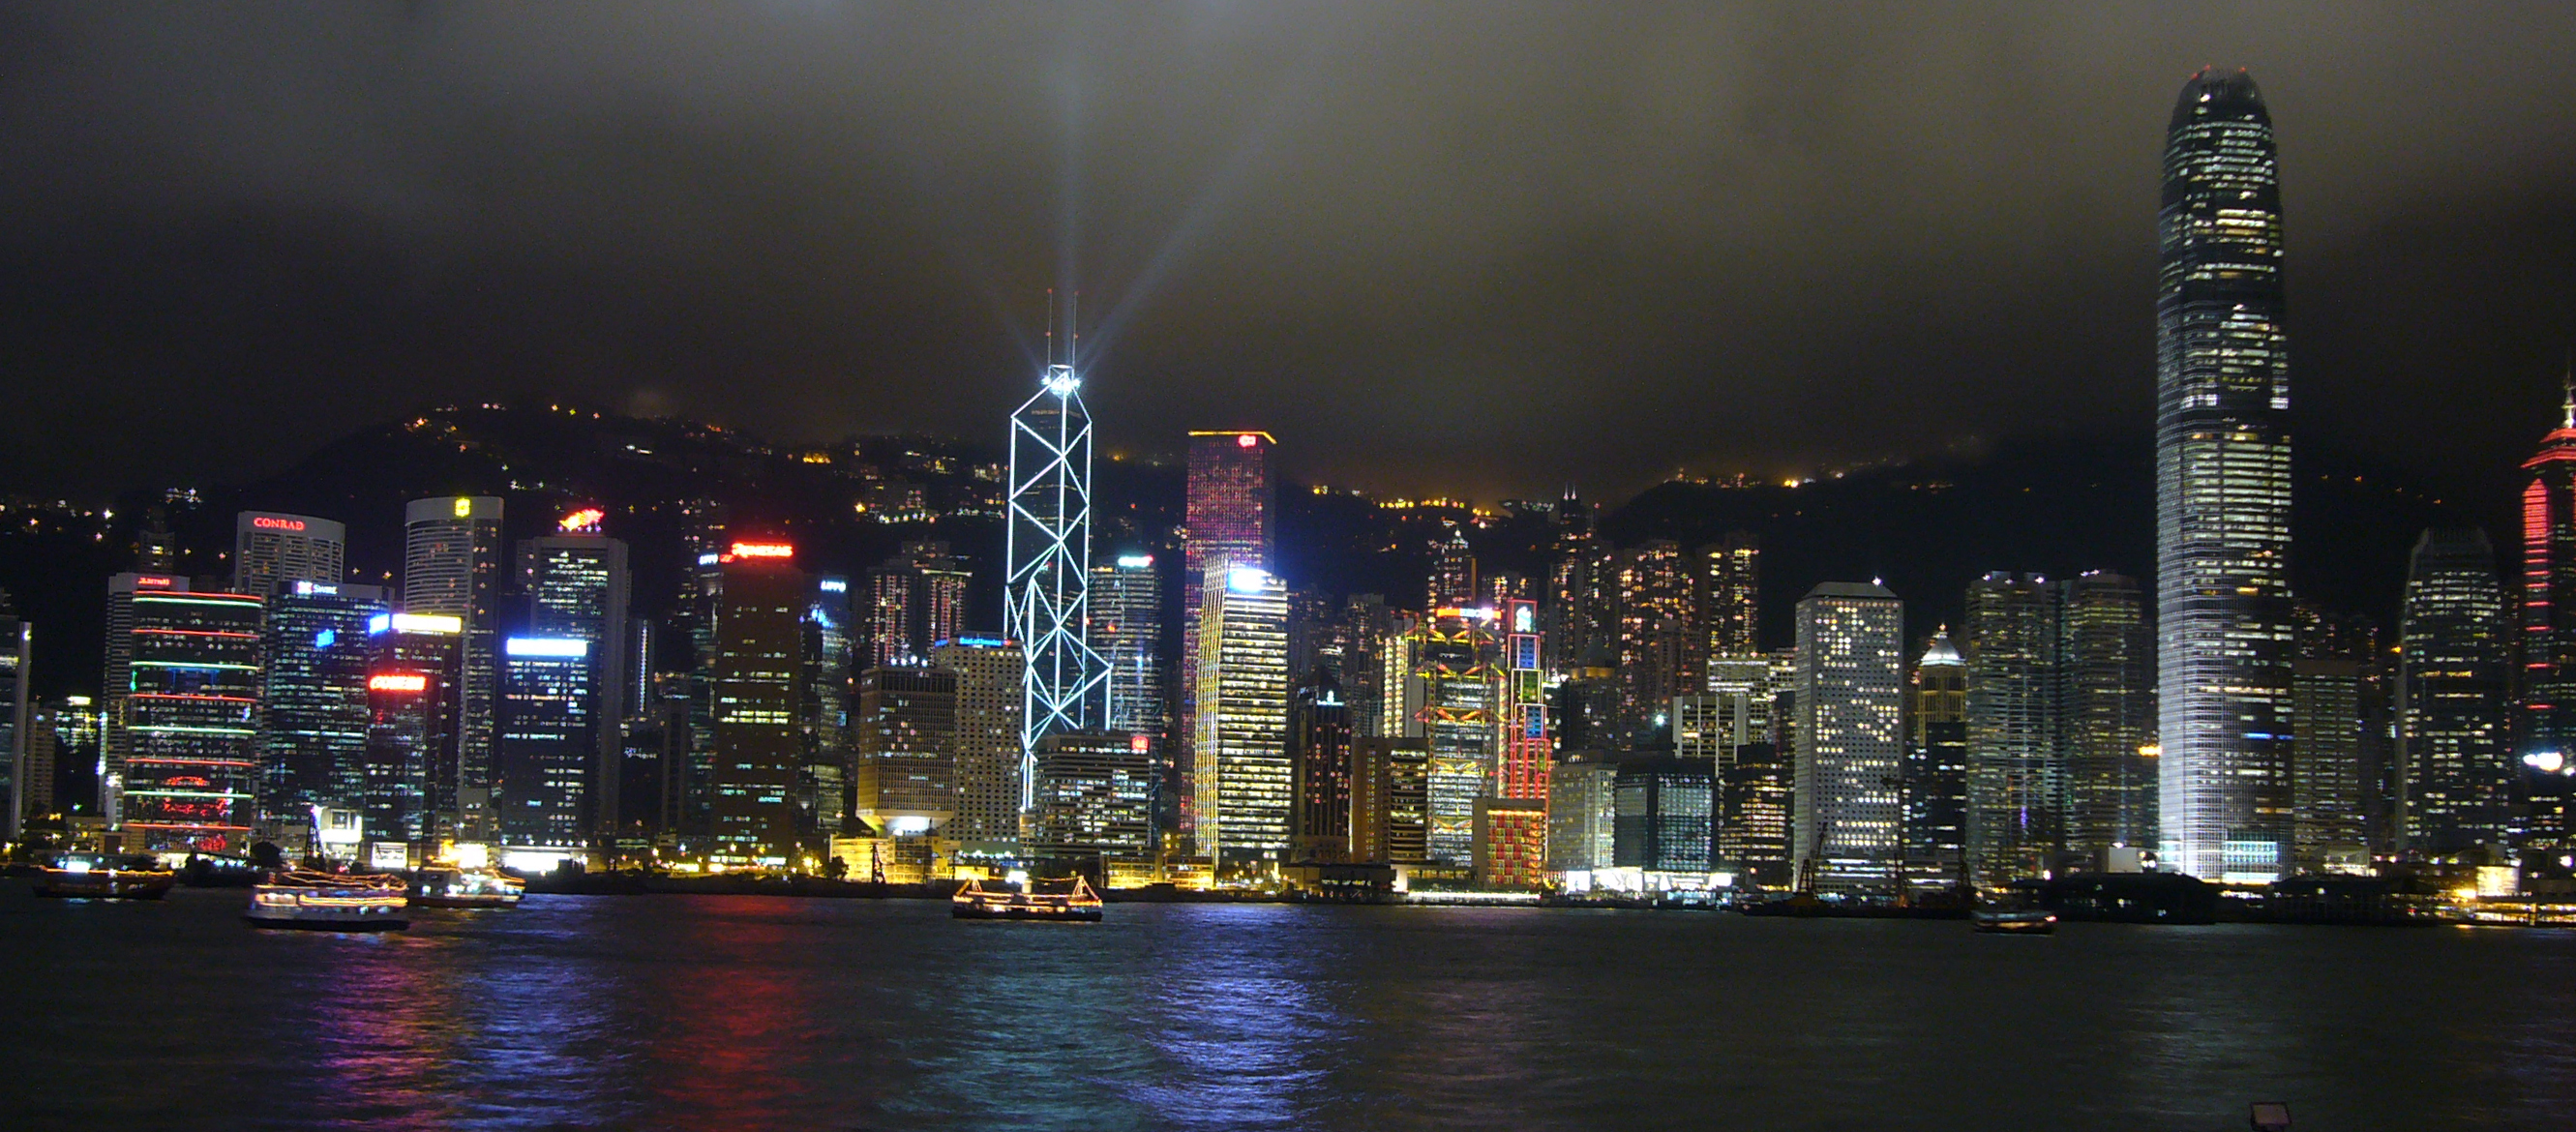 Hong Kong Hong Kong  city photos : Hong Kong Skyline Night wallpaper 40826